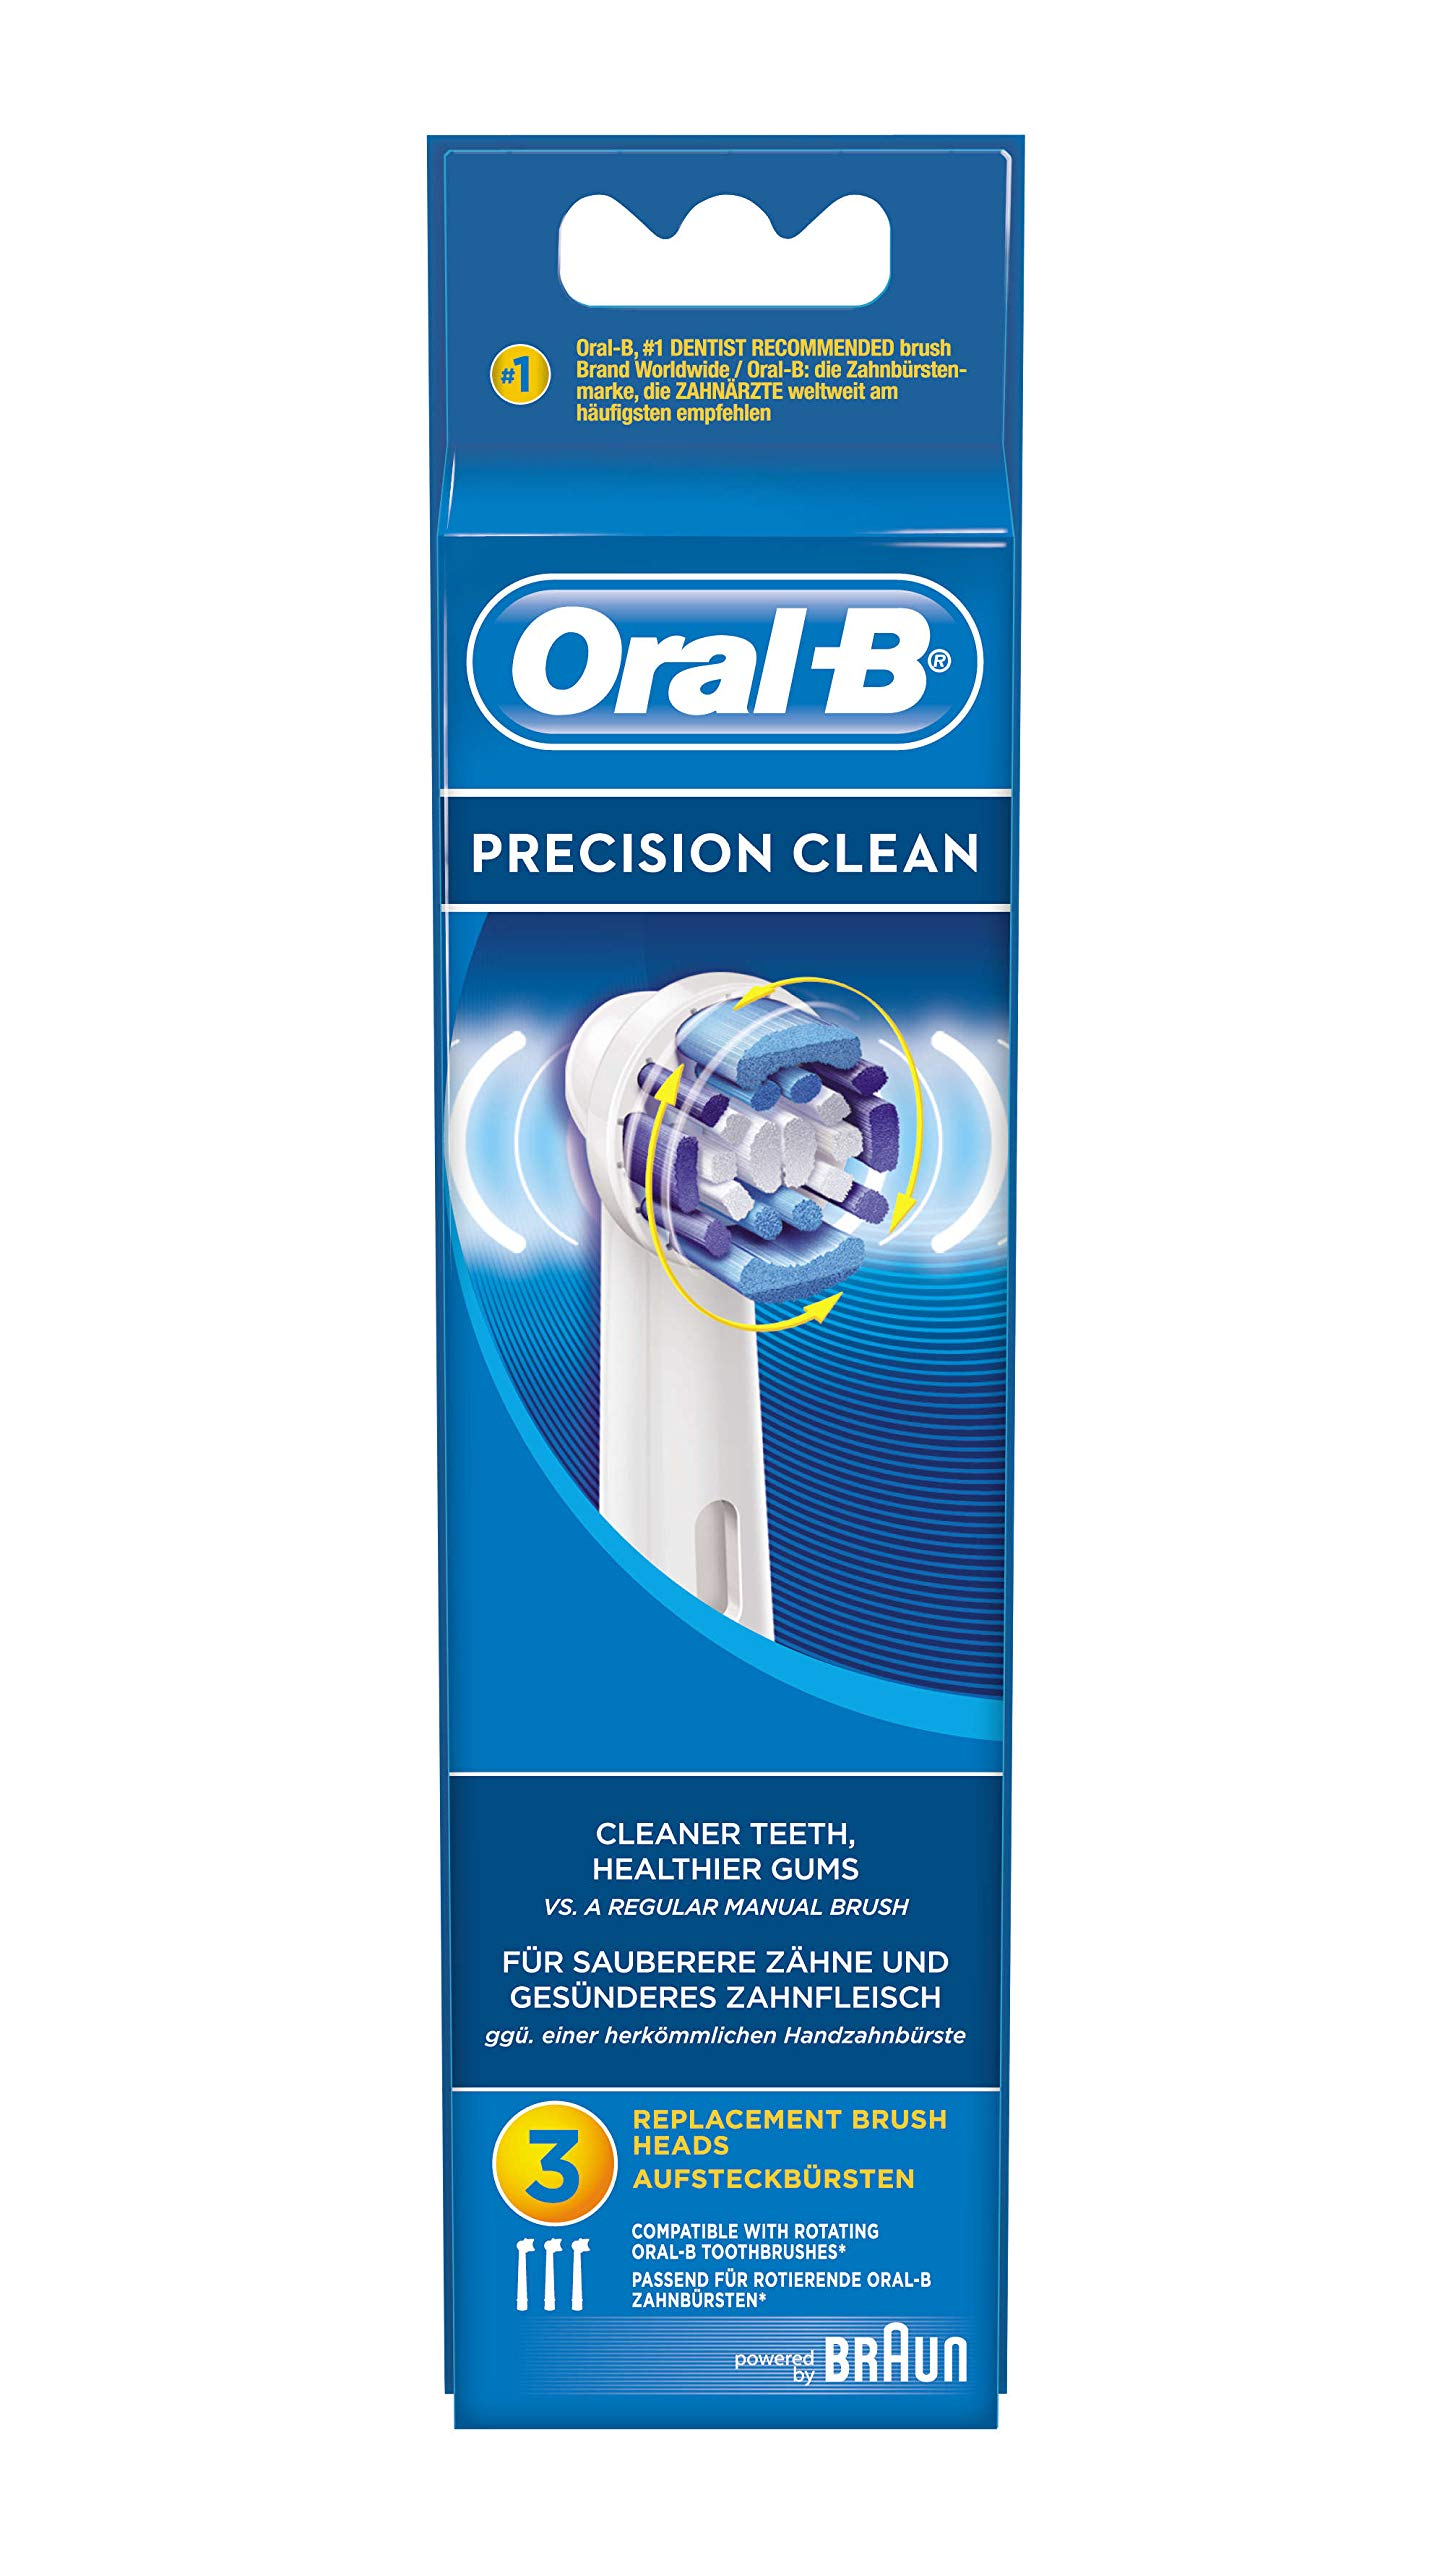 Oral-B - 64703701 - Pack Of 3 Precision Clean Electric Toothbrush Heads by Oral-B